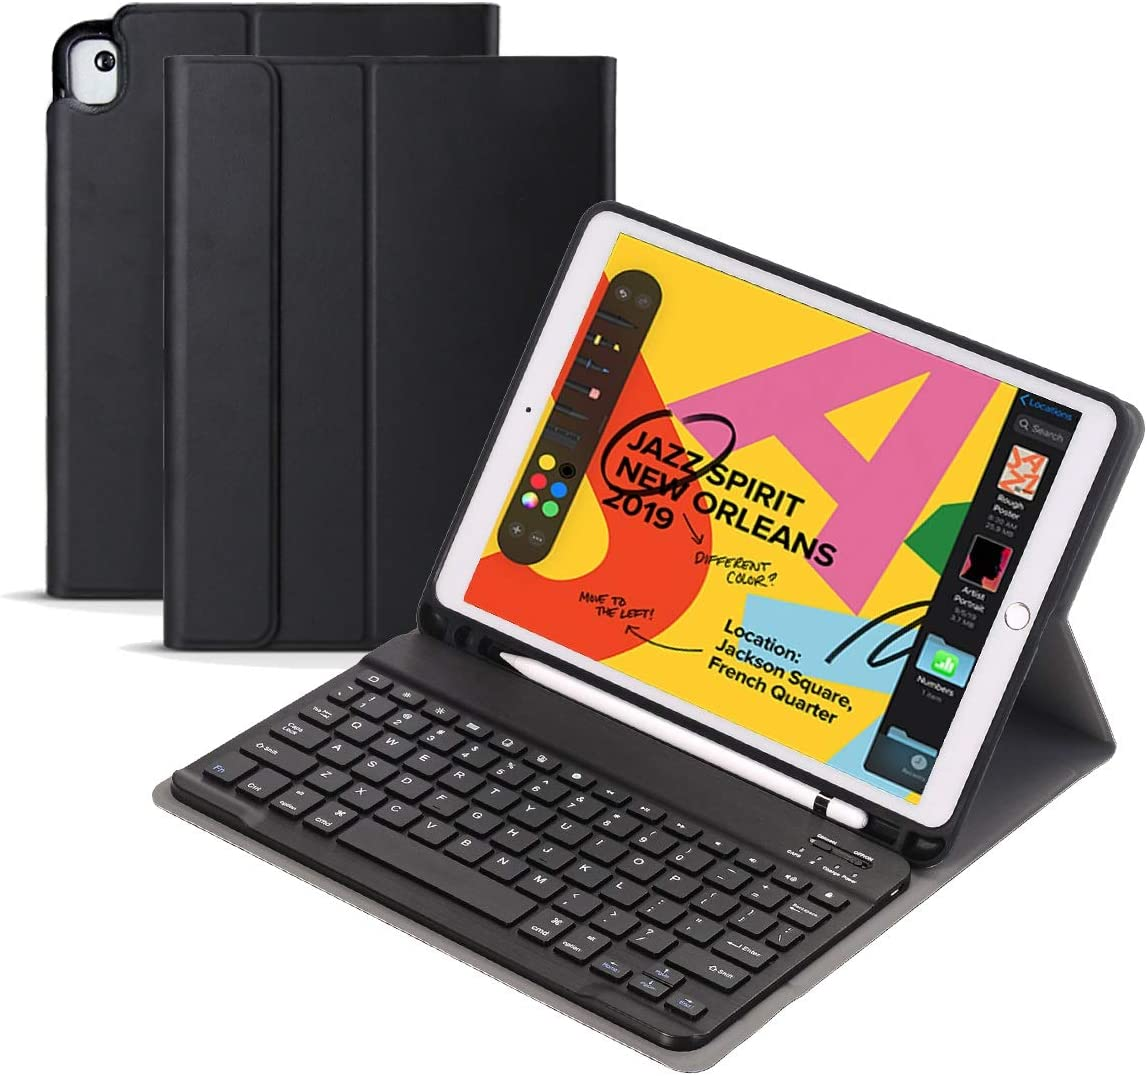 """iPad 10.2 Keyboard Case for iPad 7 2019 7th Gen, Smart Keyboard for iPad Air 3 10.5 inch/iPad Pro 10.5"""",Detachable Wireless Keyboard with Pencil Holder, Protective Case Adjustable Stand (Black)"""